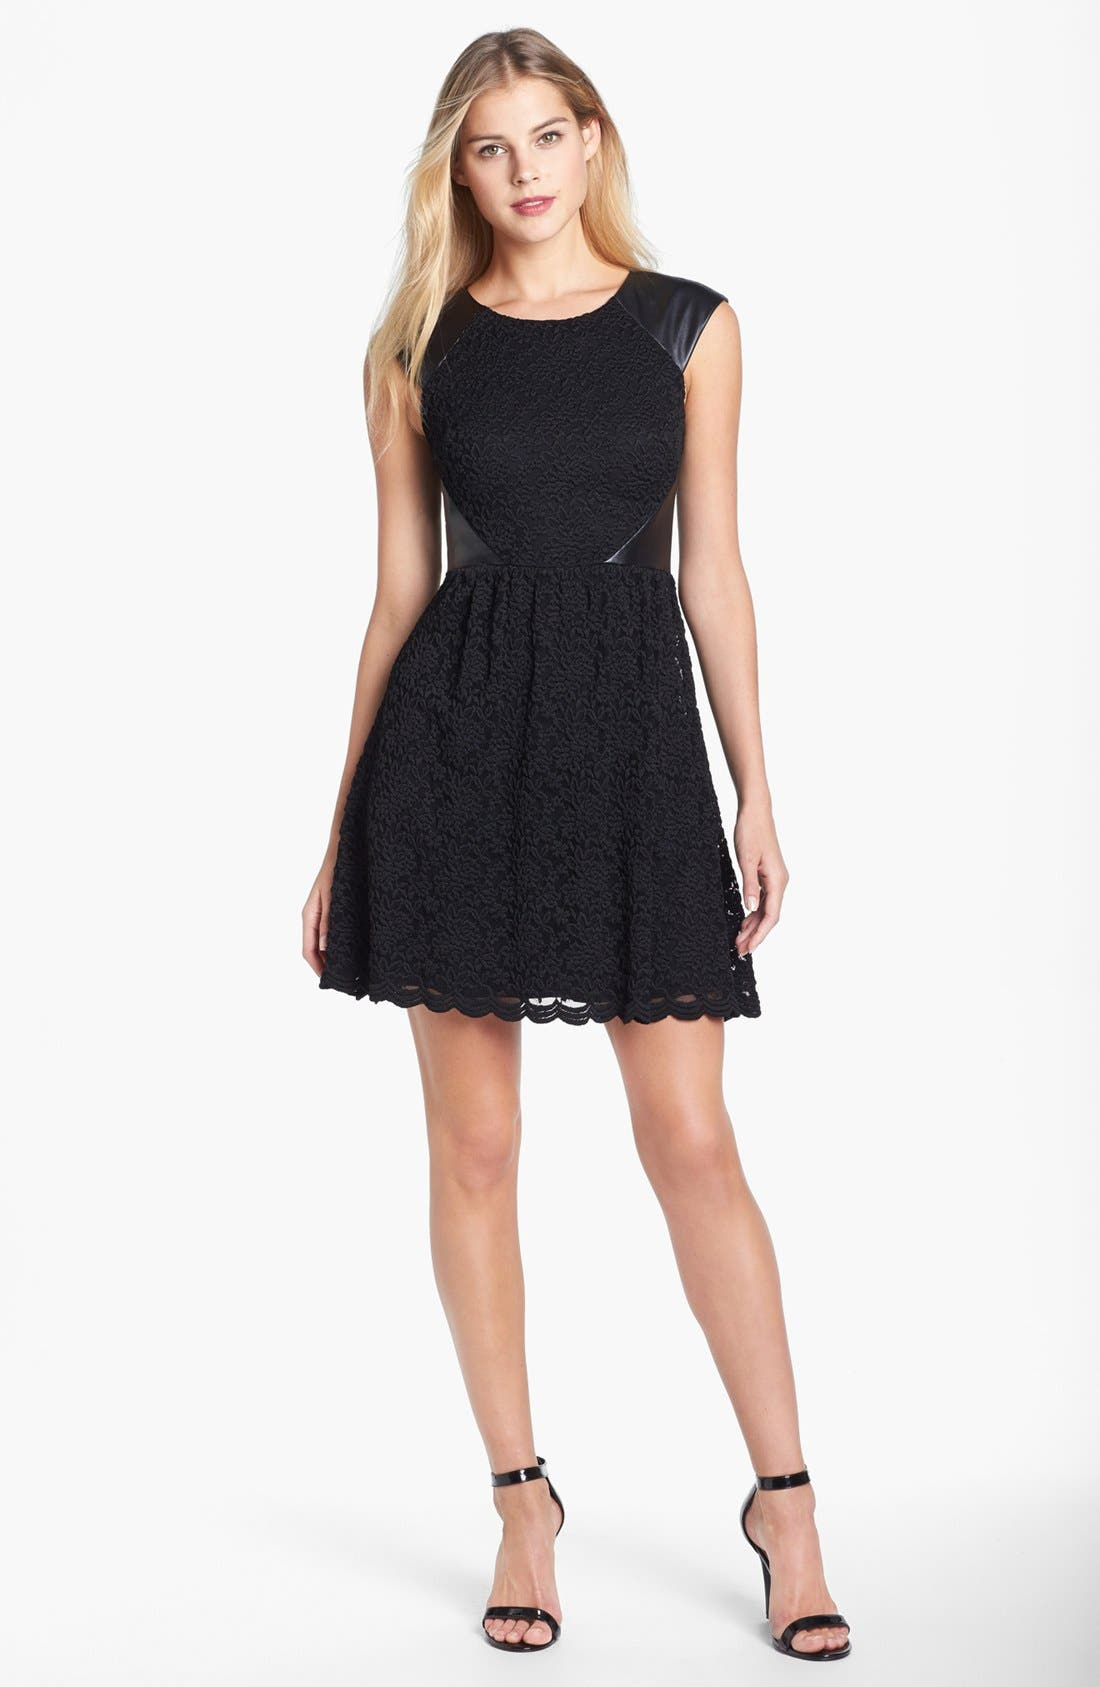 Alternate Image 1 Selected - Betsey Johnson Faux Leather Trim Lace Fit & Flare Dress